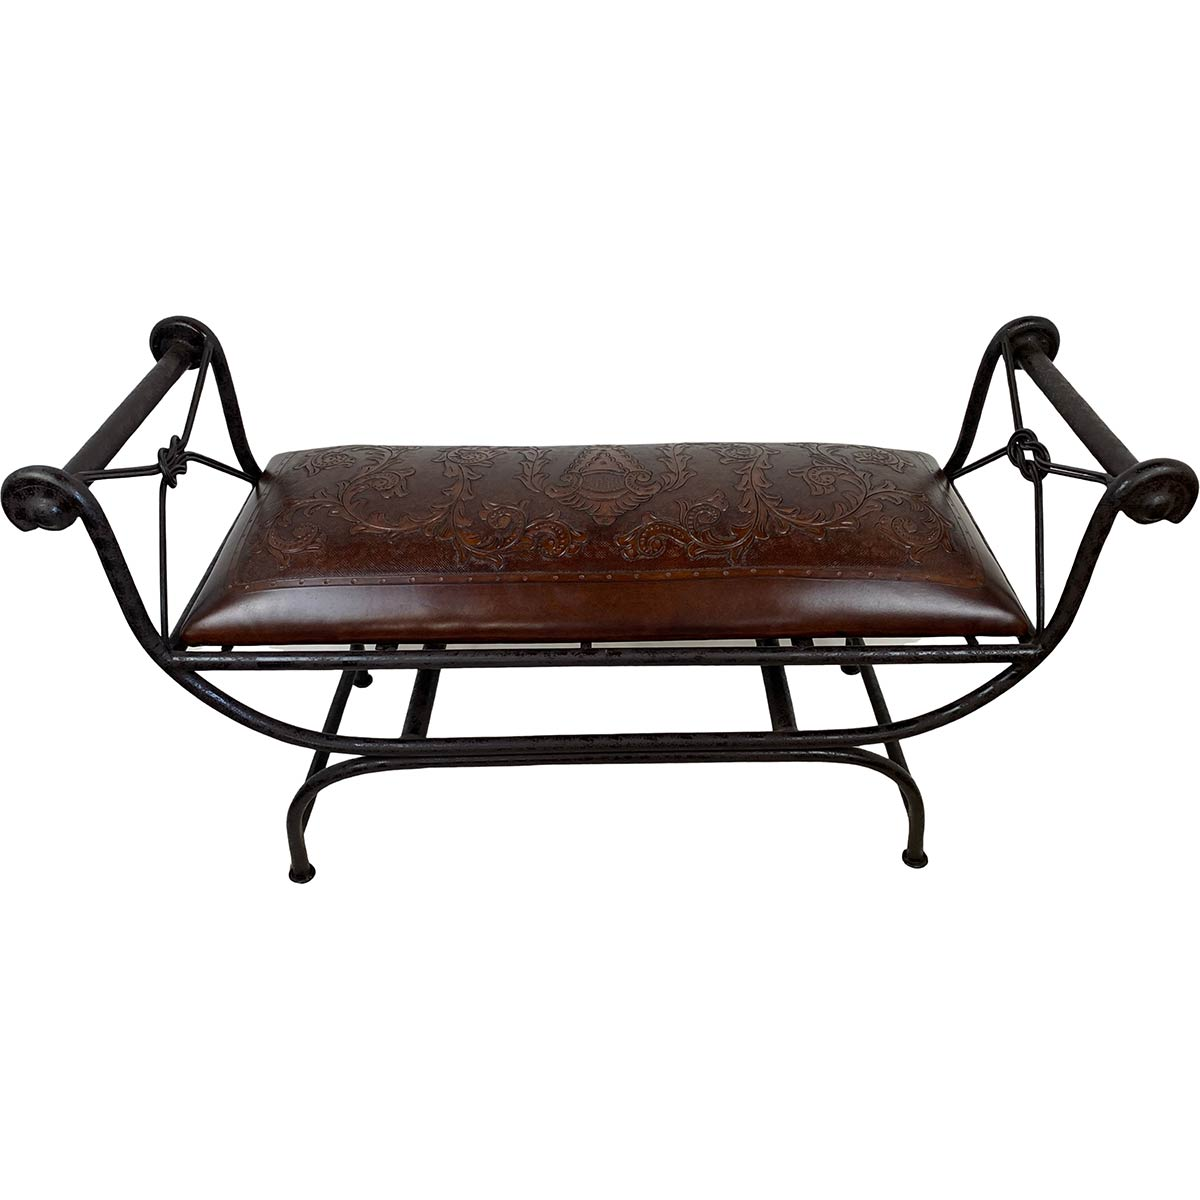 Double Vanity Bench - Colonial & Antique Brown